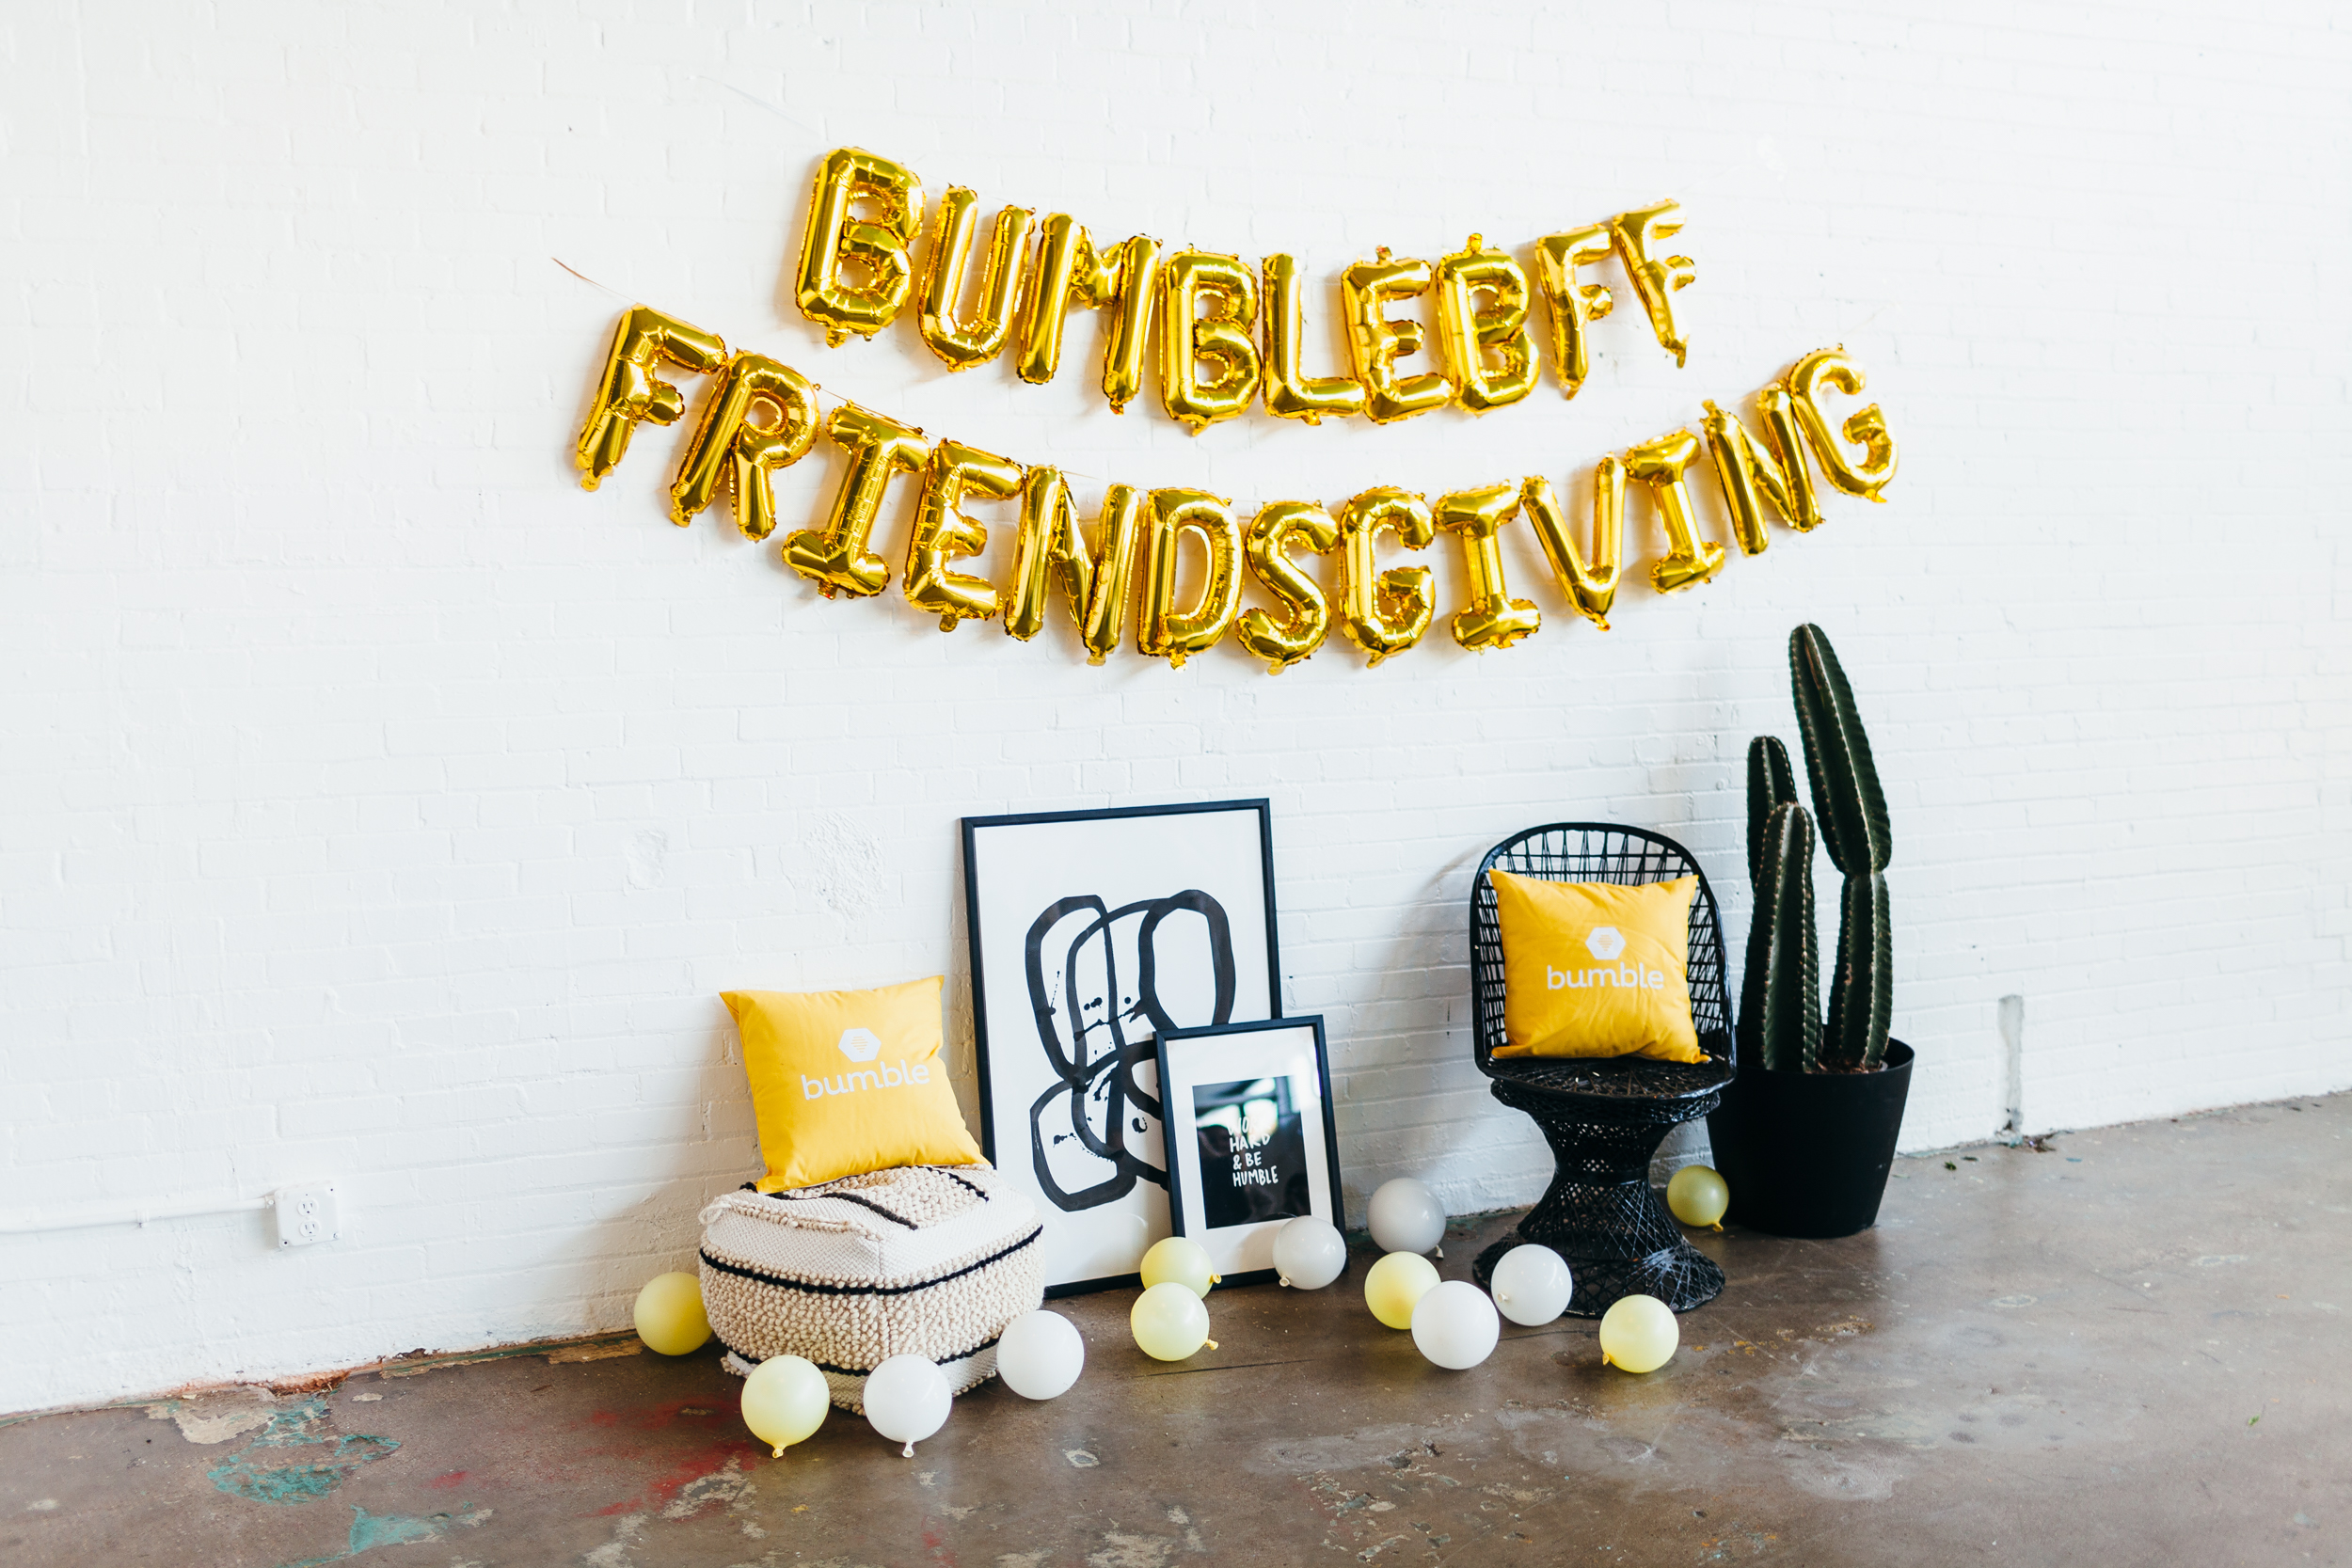 bumble-bff-friendsgiving-@sheinthemaking-3090.jpg